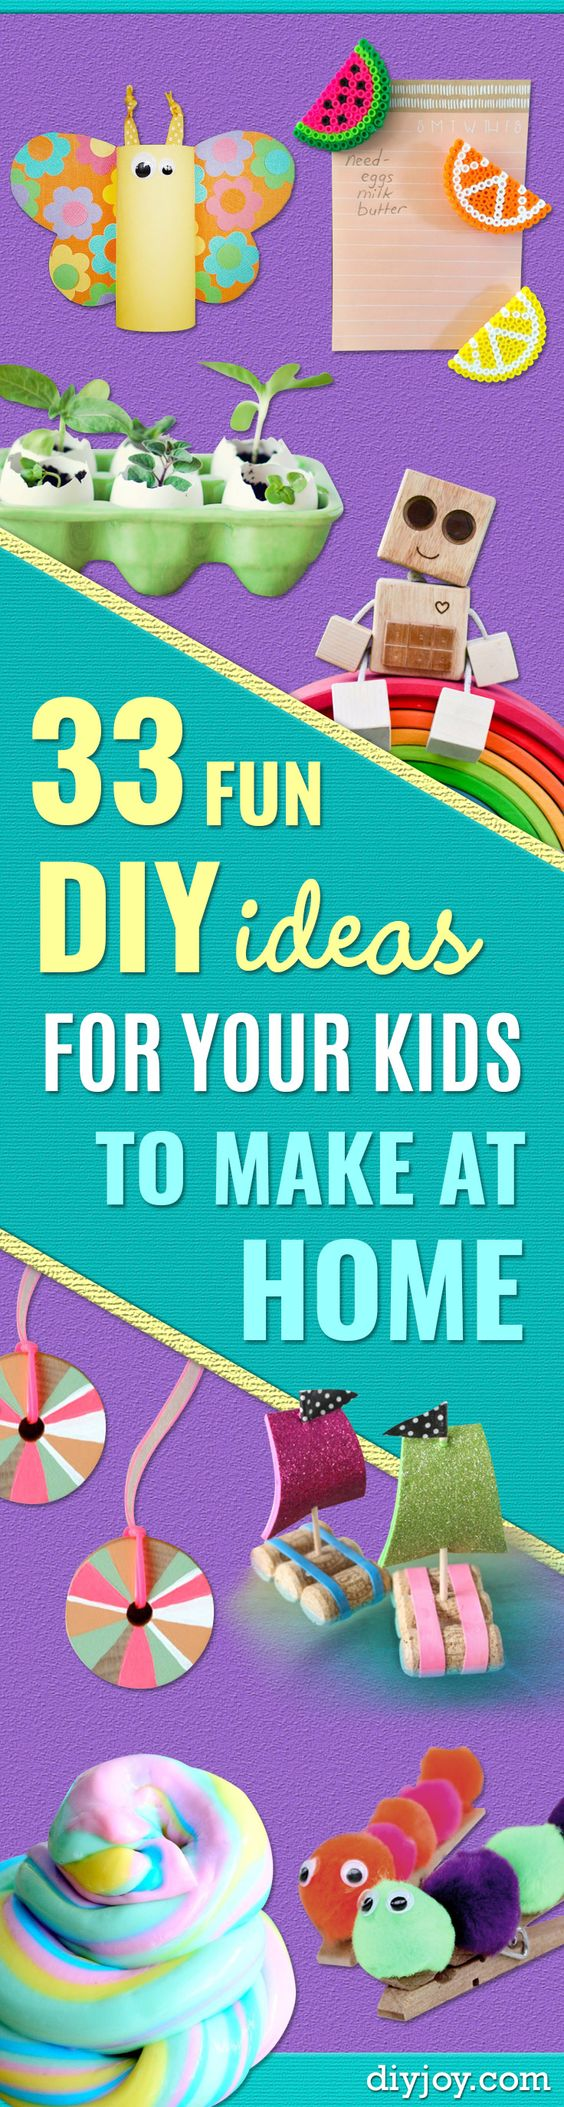 Craft Ideas for Children - Cute Paper Crafts, Fall and Winter Fun, Things For Toddlers, Babies, Boys and Girls to Make At Home http://diyjoy.com/diy-ideas-for-kids-to-make: